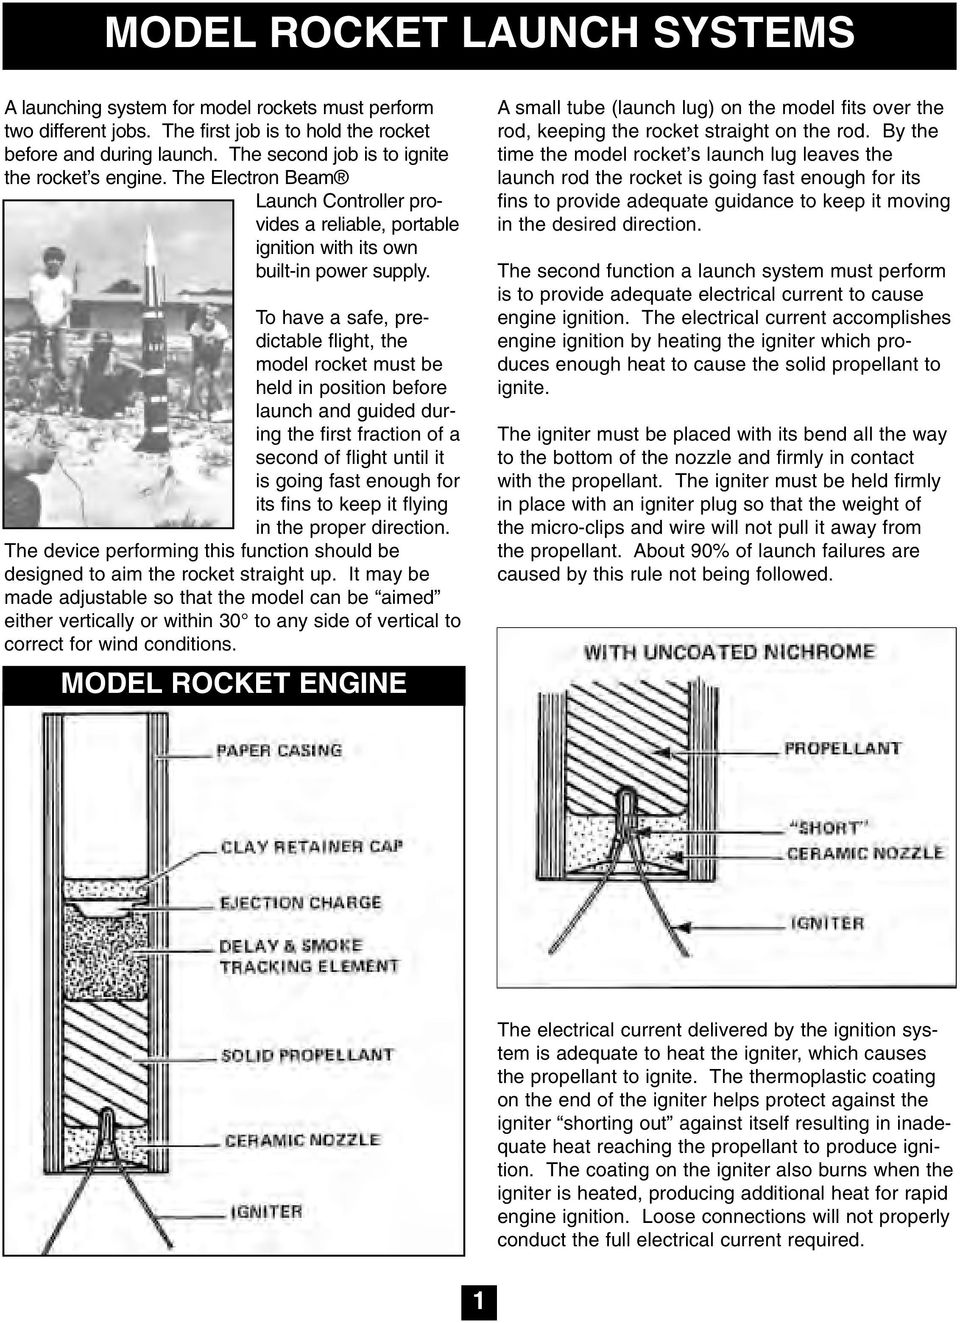 To have a safe, predictable flight, the model rocket must be held in position before launch and guided during the first fraction of a second of flight until it is going fast enough for its fins to